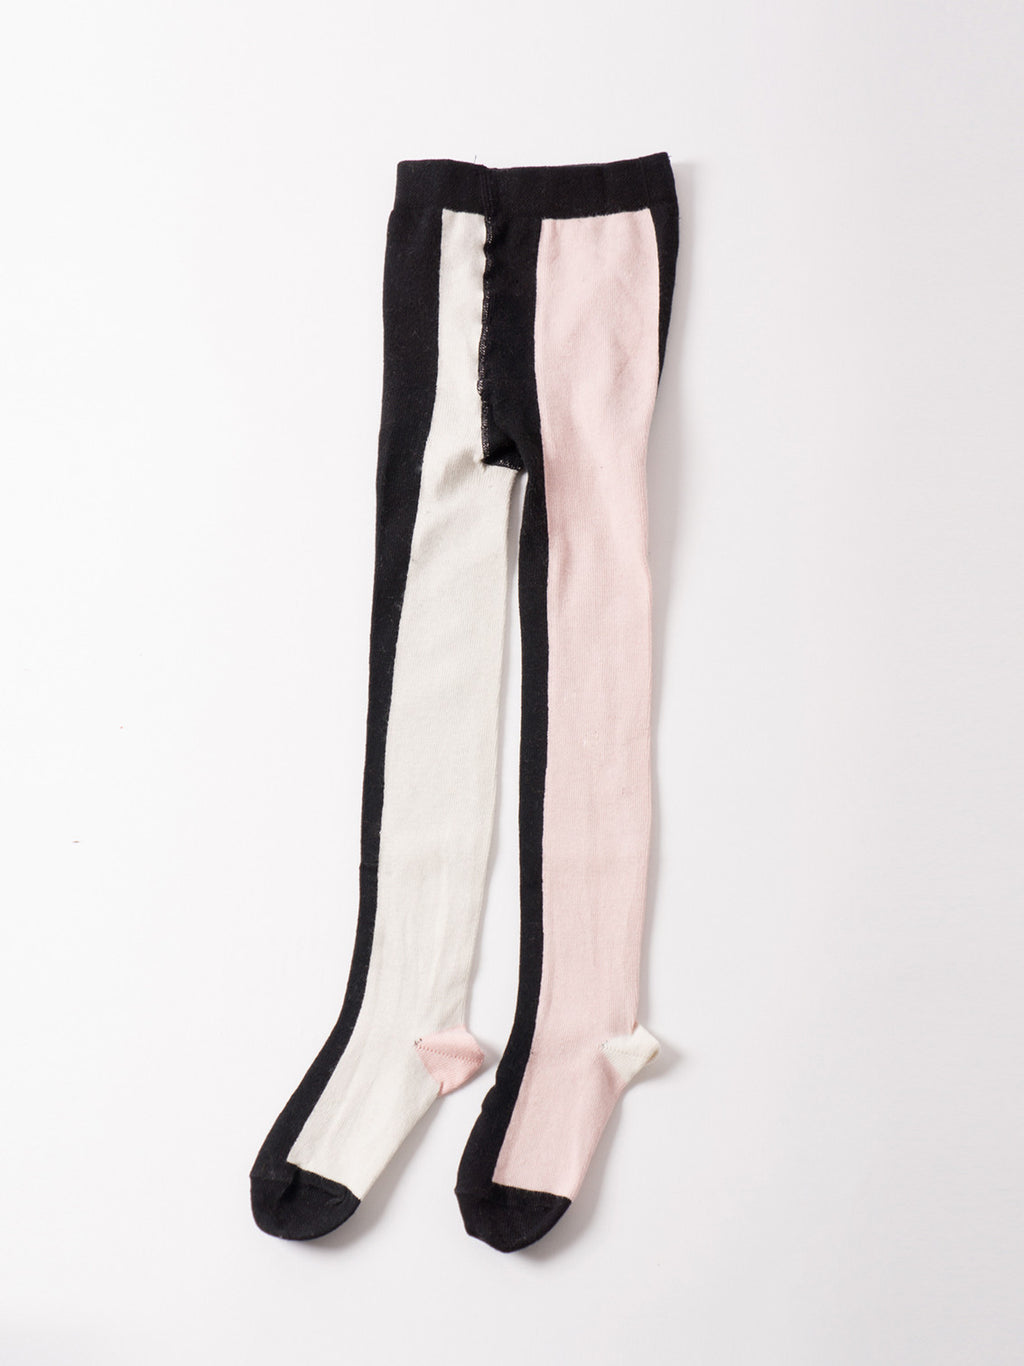 Bobo Choses Tights - Vertical Multicolour Pink - My Messy Room - 1